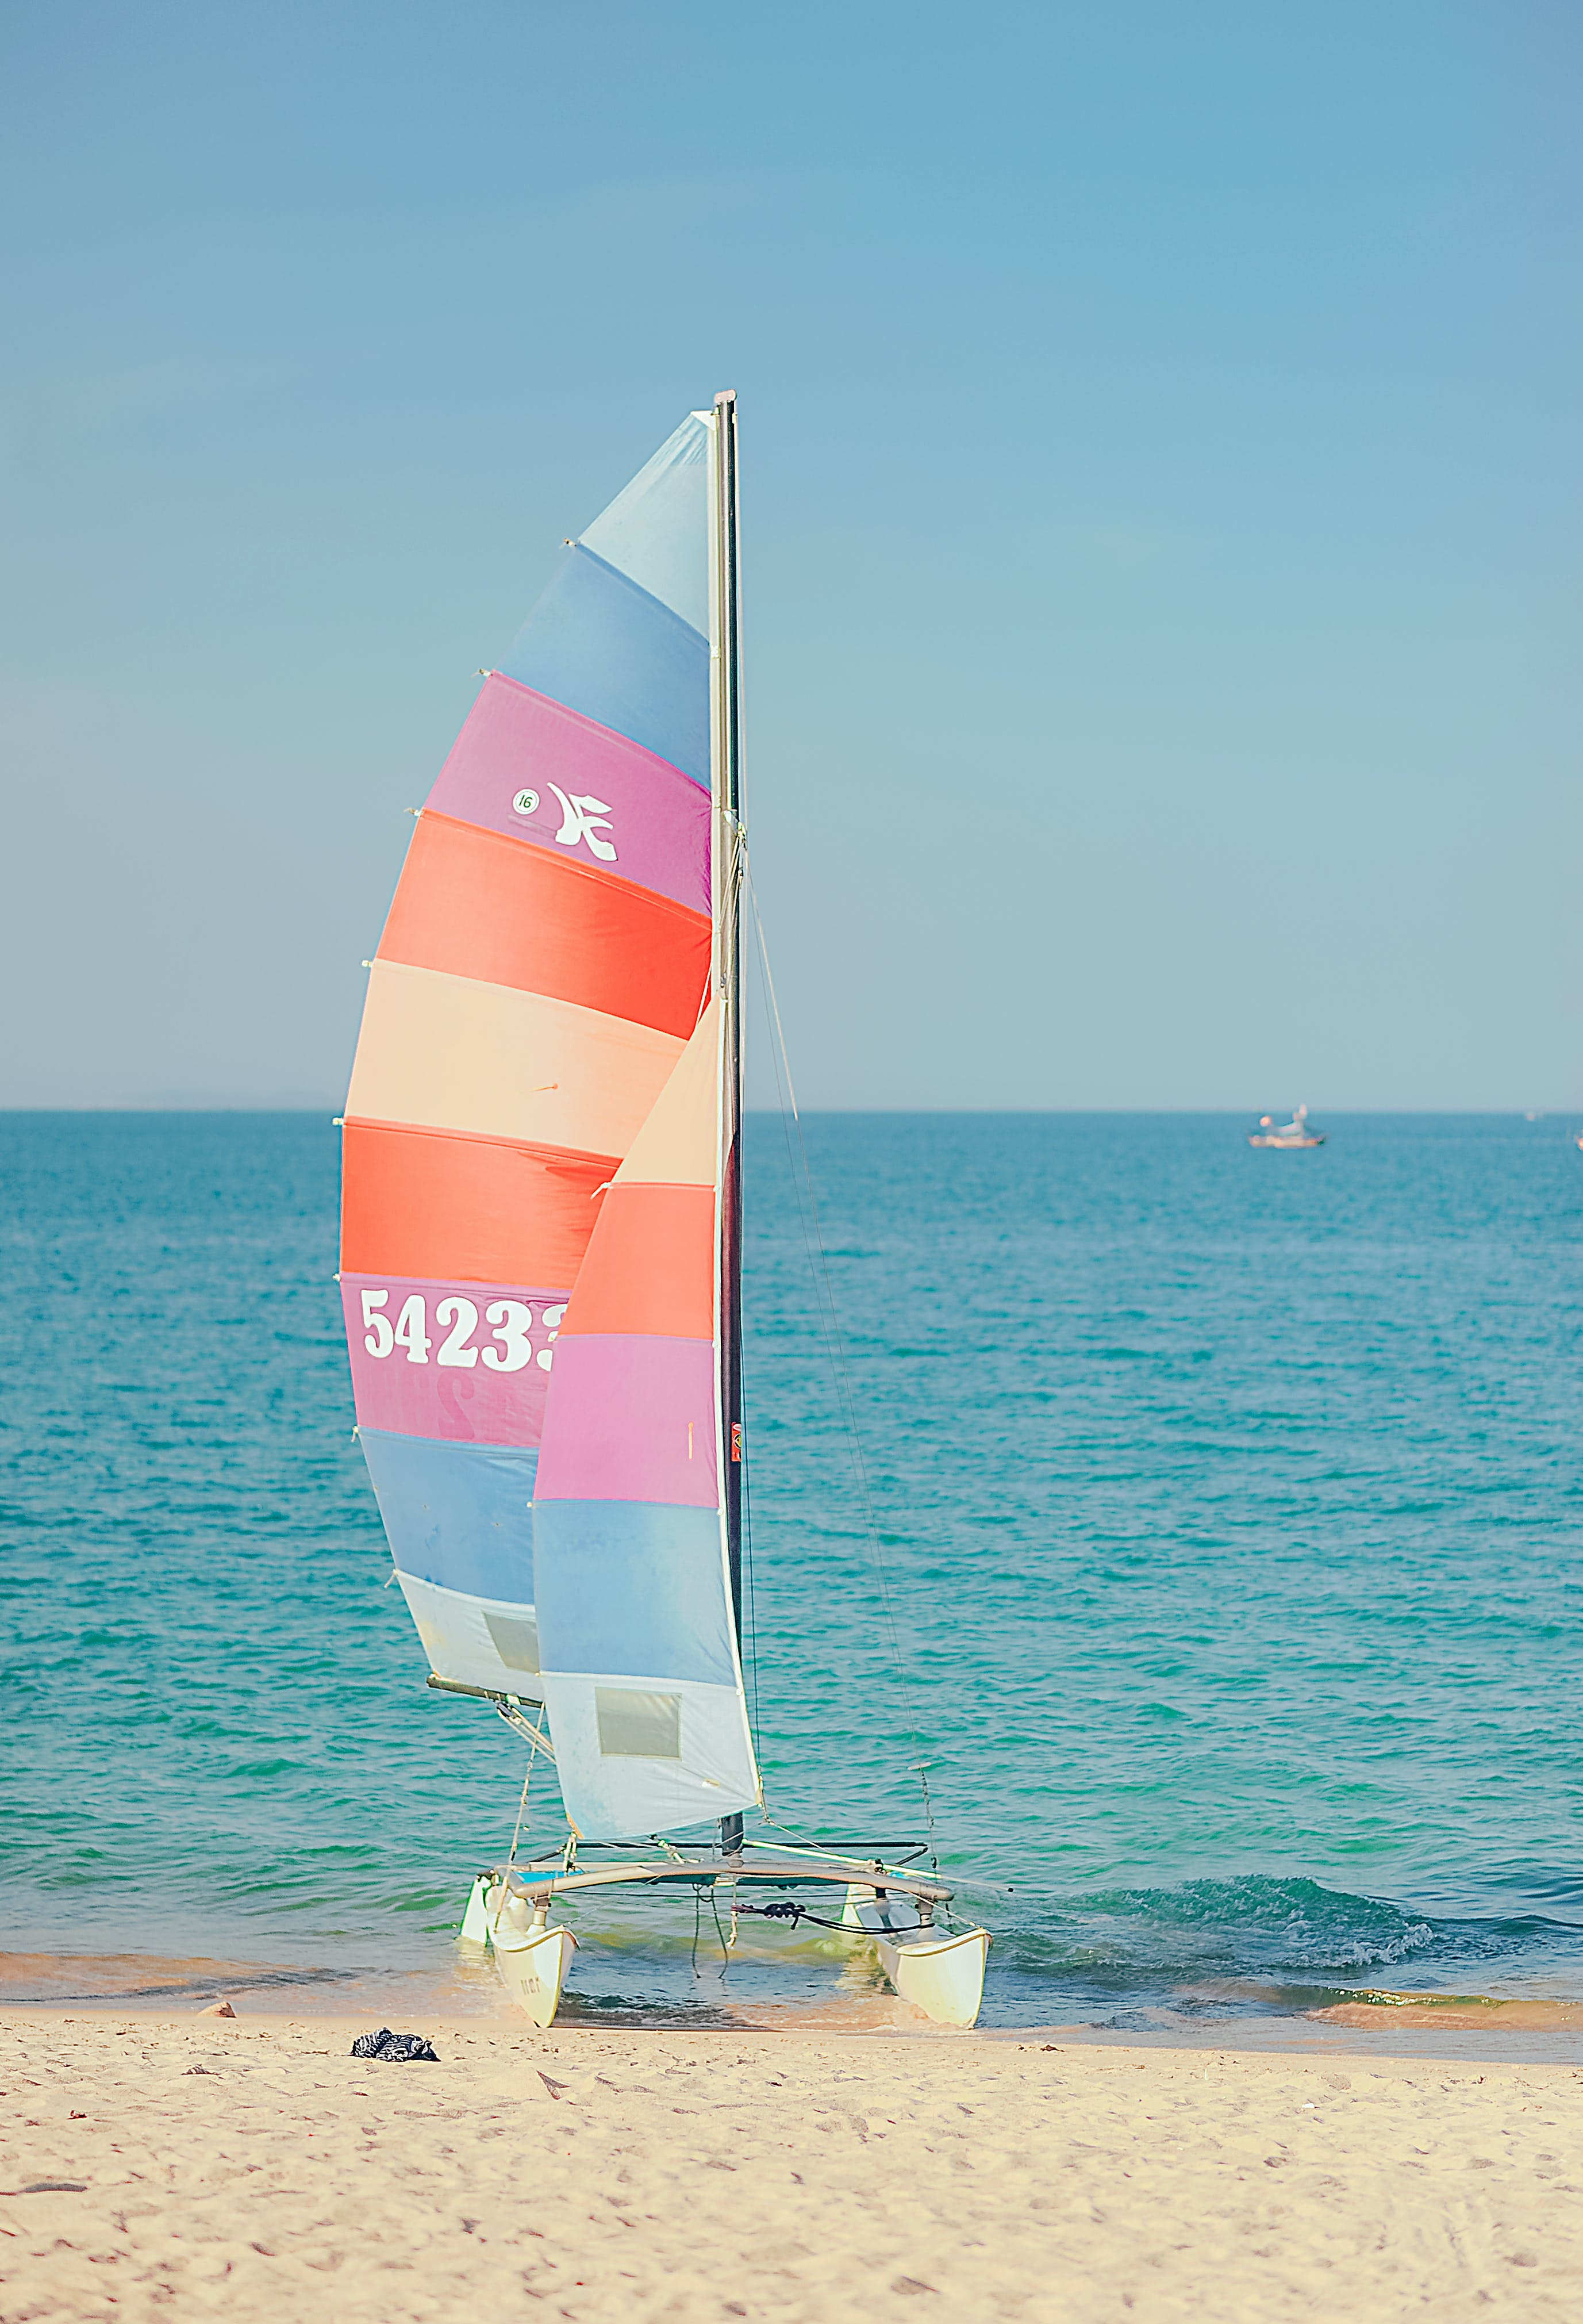 Multicolored Sail Boat on Shore Overlooking Sea Under Daytime Sky